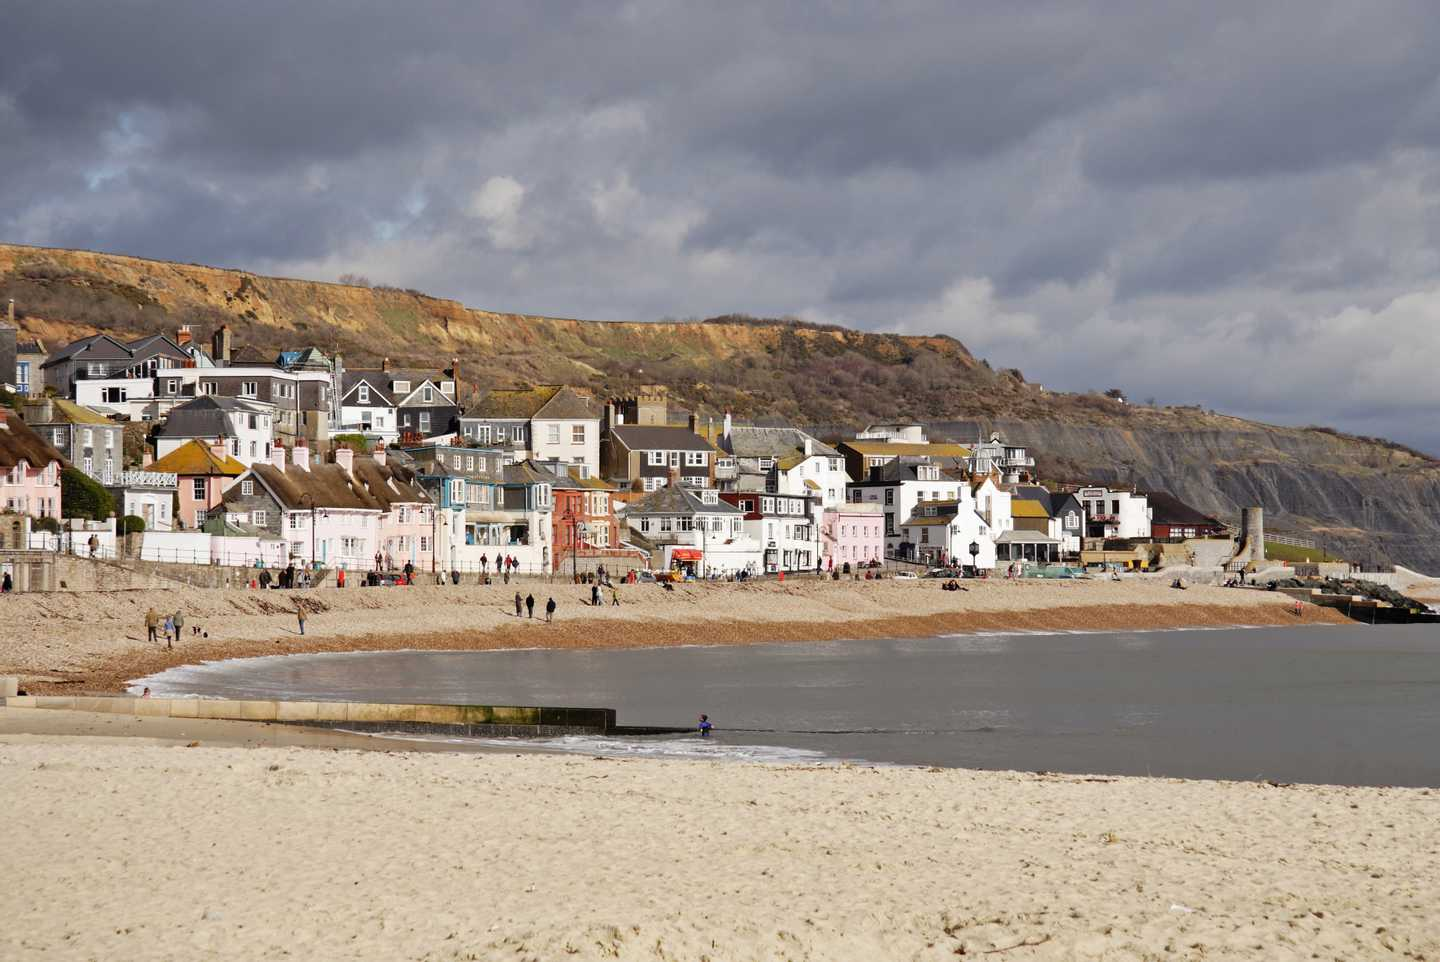 Coastal town of Lyme Regis